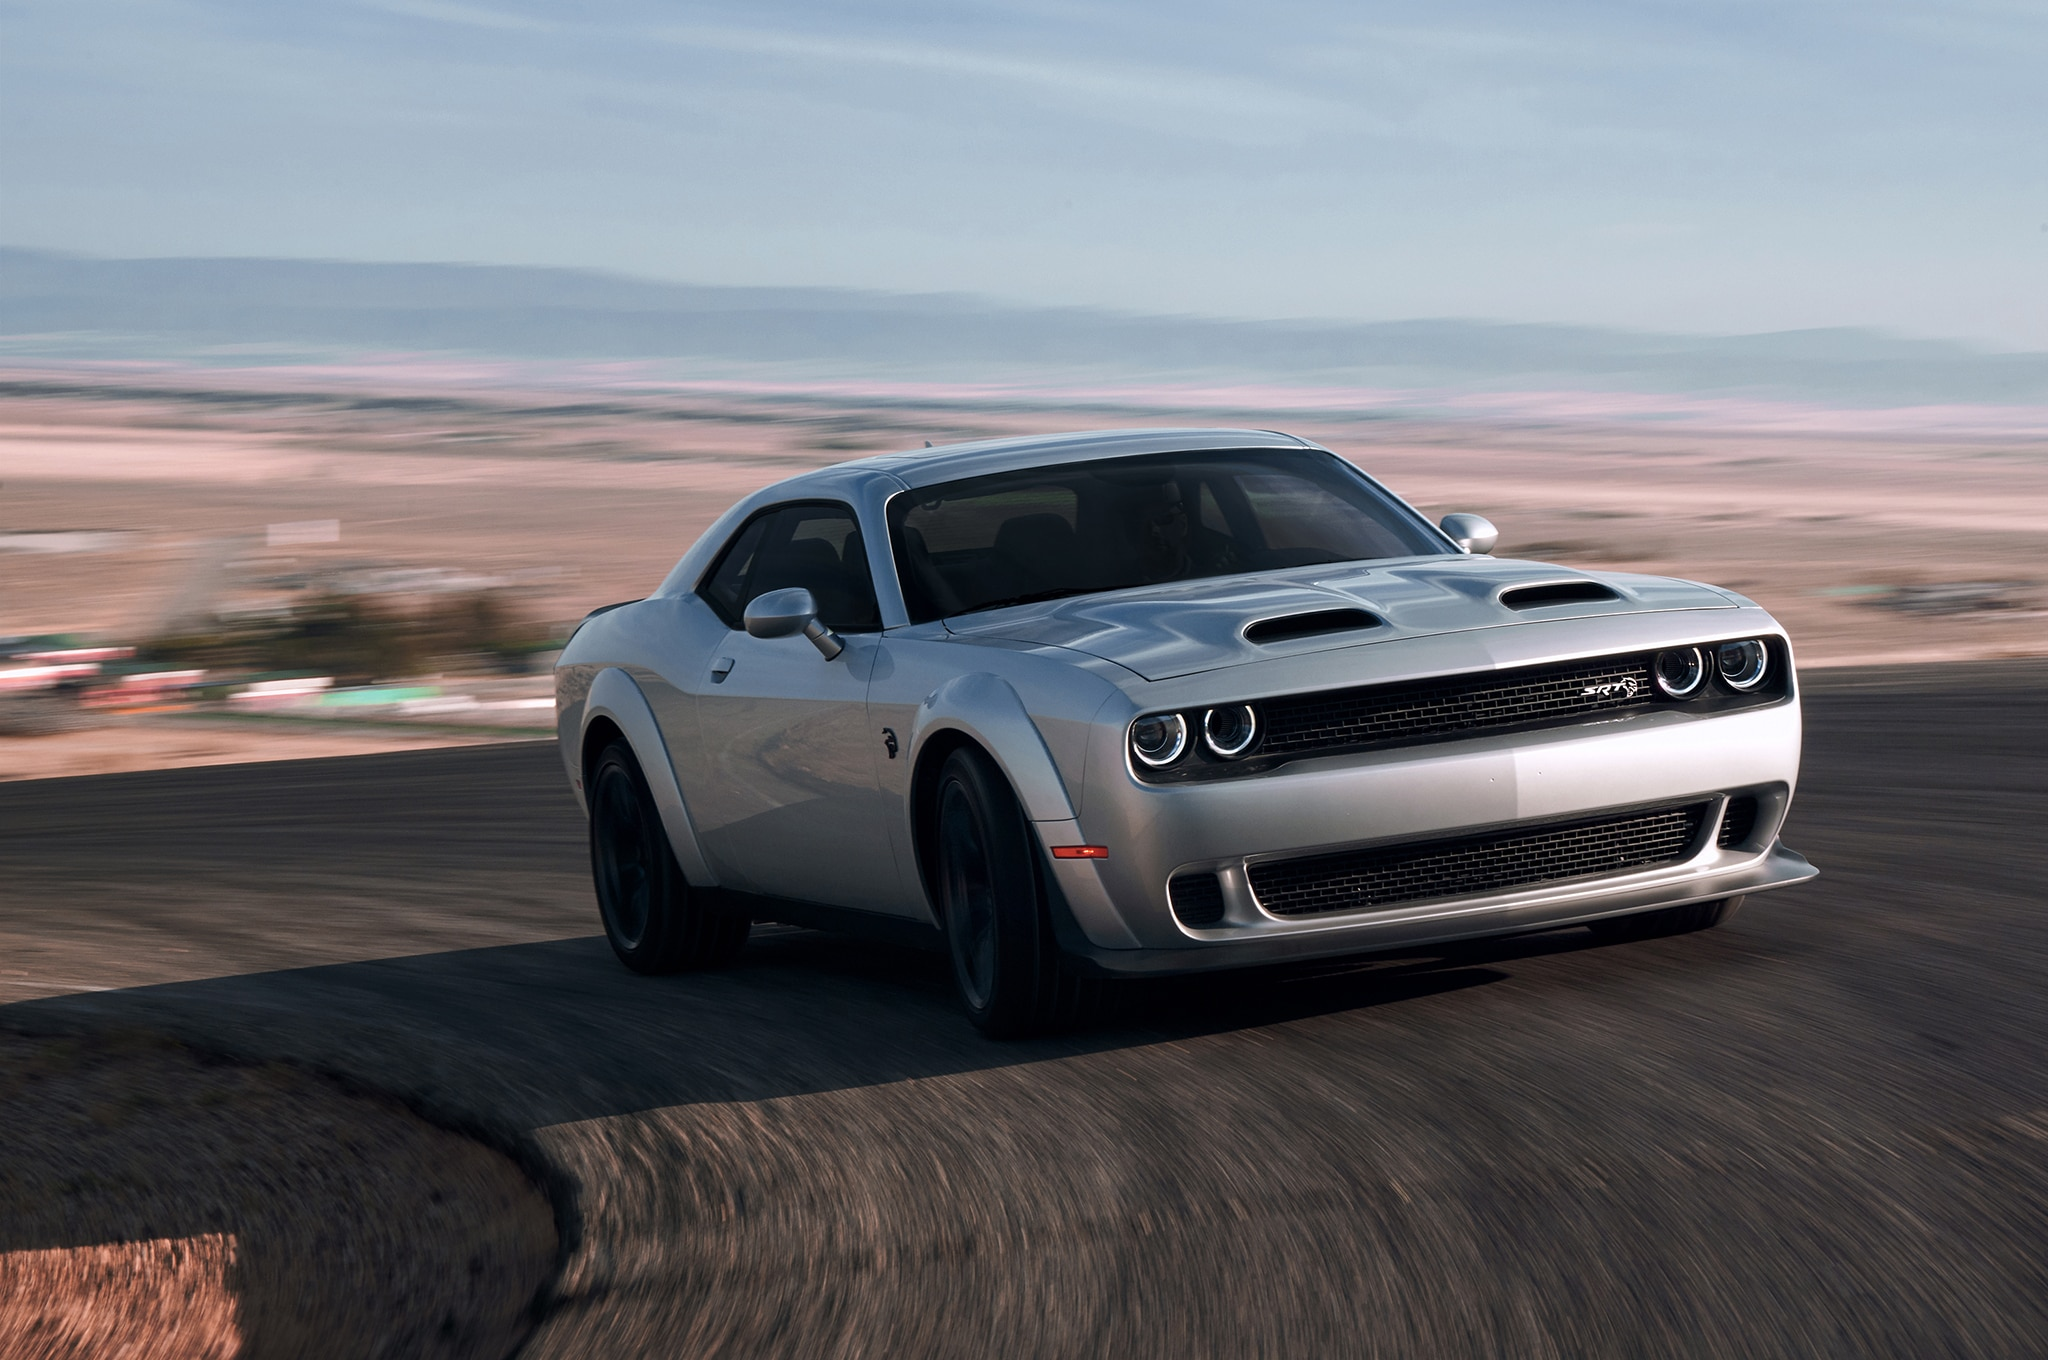 2019 Dodge Challenger SRT Hellcat Redeye Widebody Front Three Quarter In Motion 1